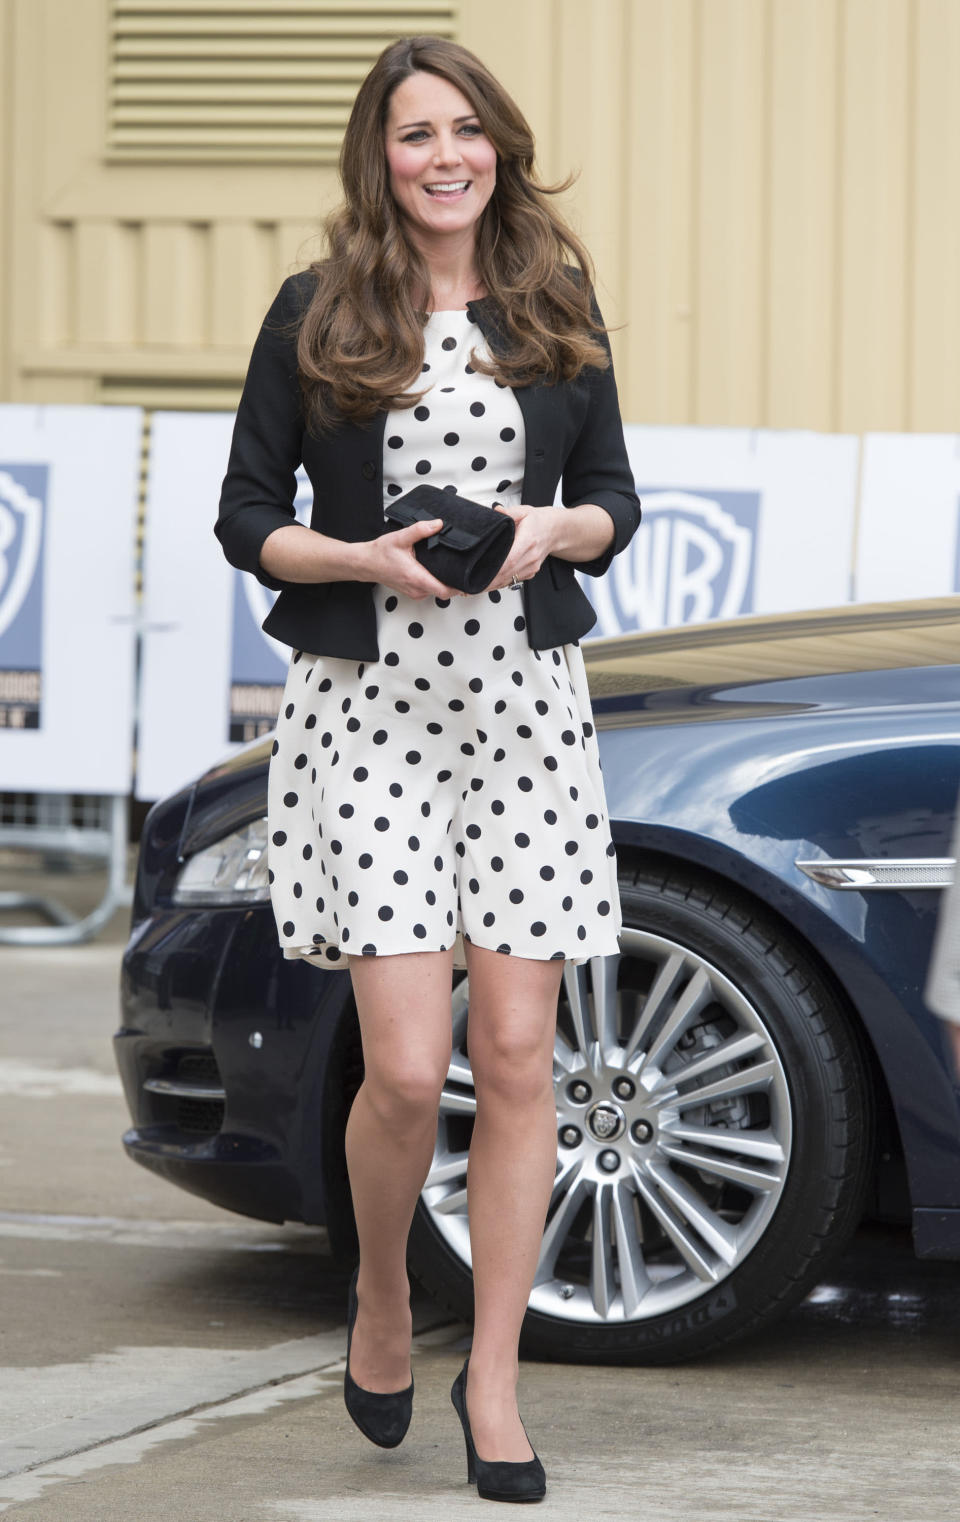 <p>Kate visited the Warner Bros. studios in April 2013 in a polka-dot dress by Topshop. She accessorised the look with co-ordinating monochrome accessories. <em>[Photo: Getty]</em> </p>